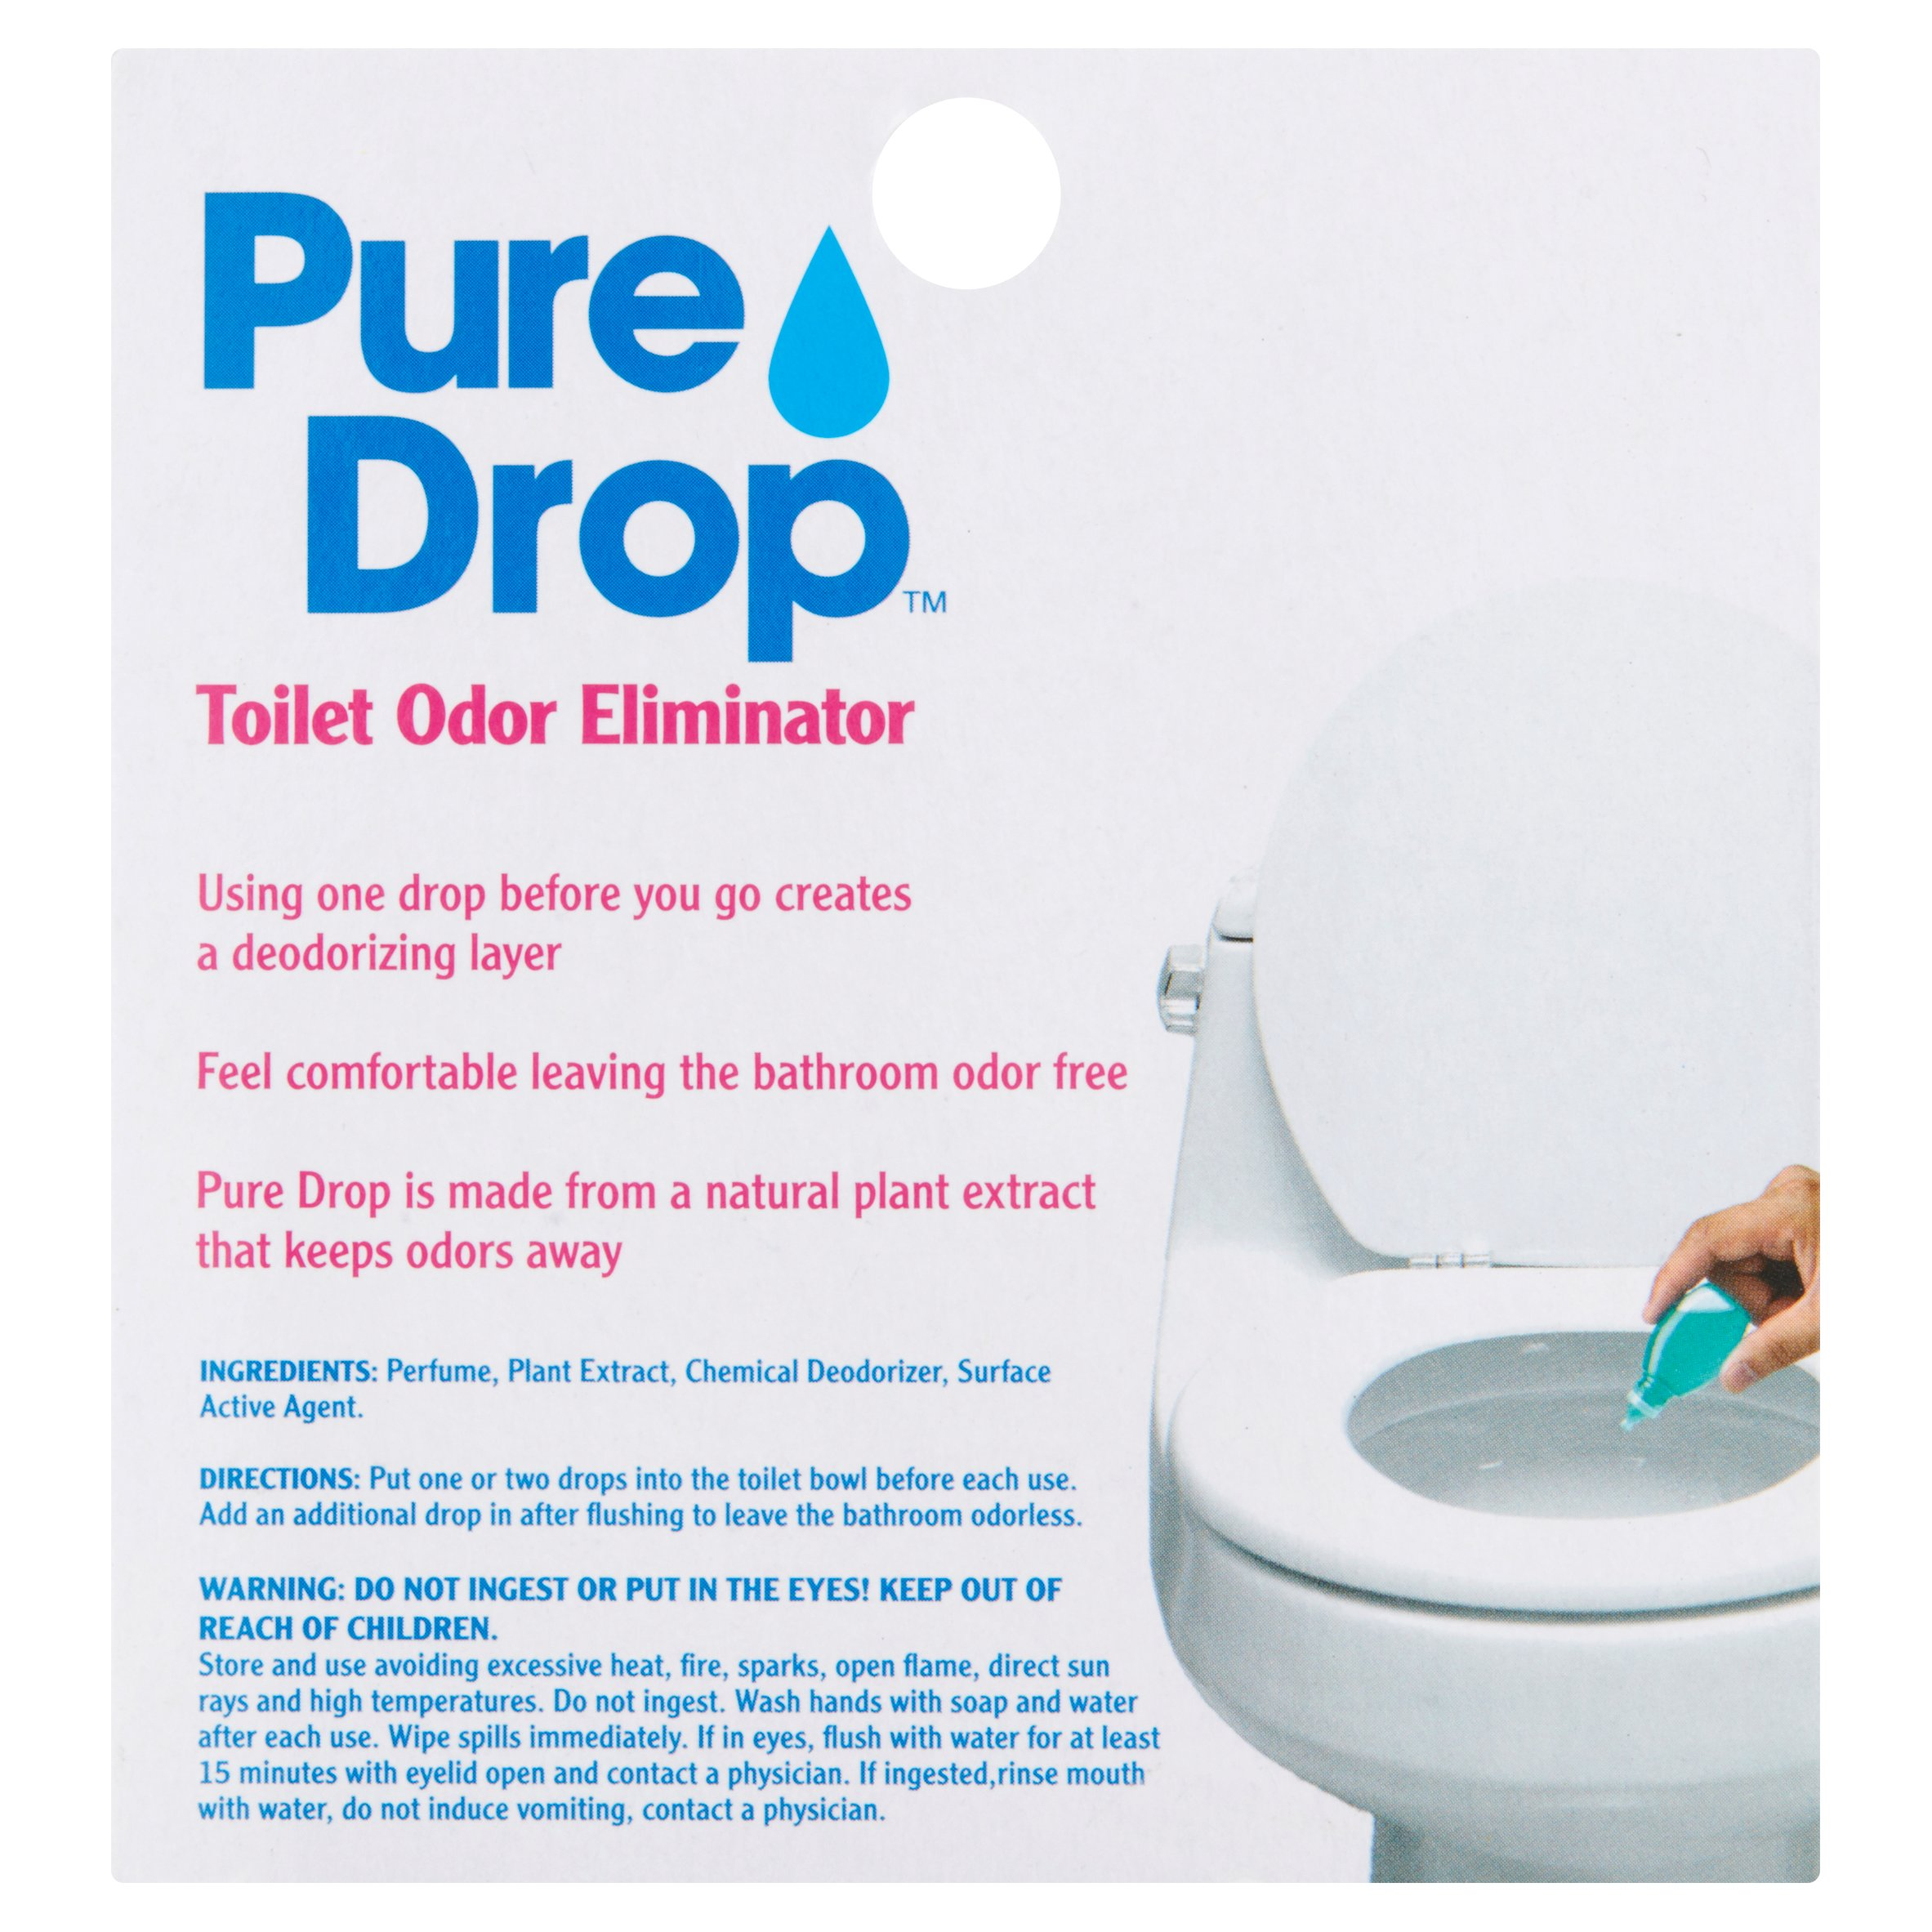 Pure Drop Toilet Odor Eliminator Fl Oz Walmartcom - Best odor eliminator for bathroom for bathroom decor ideas